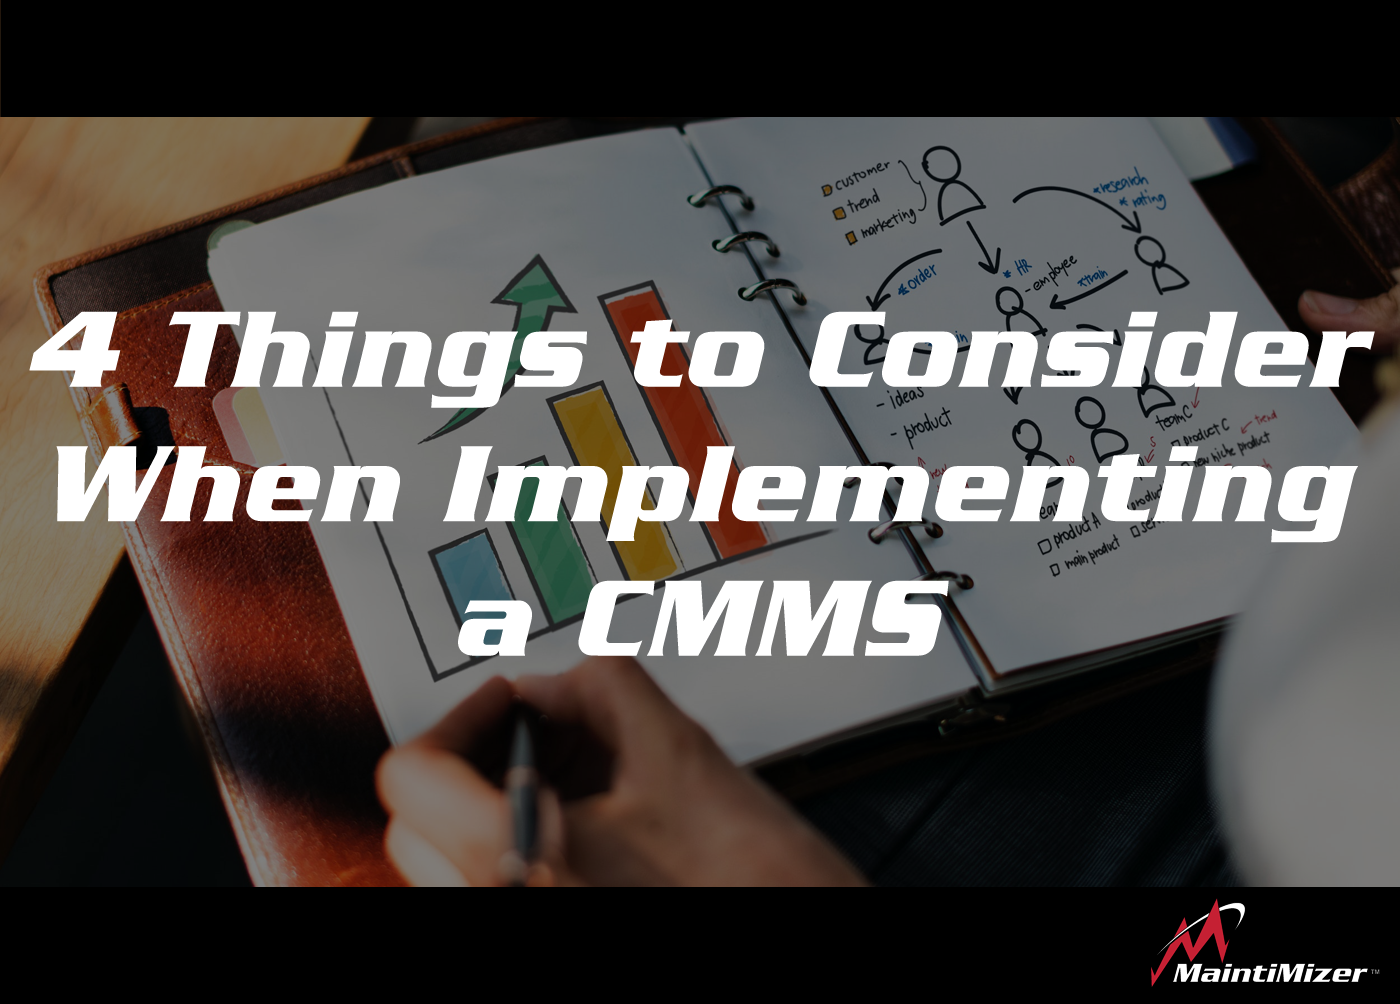 Implementing a CMMS